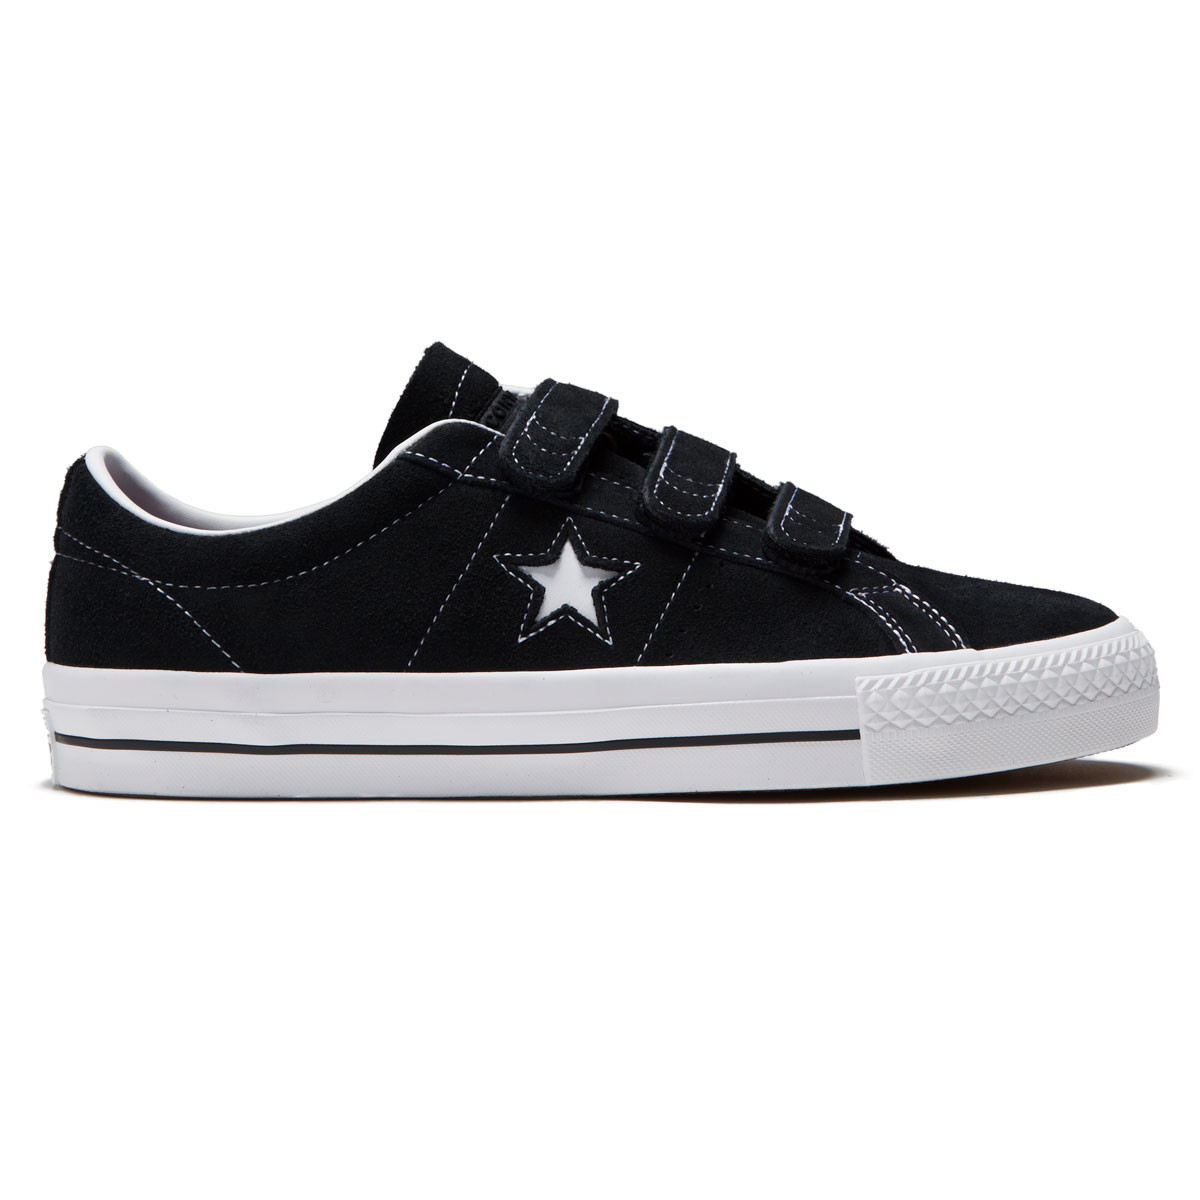 Converse One Star Pro 3V Shoes